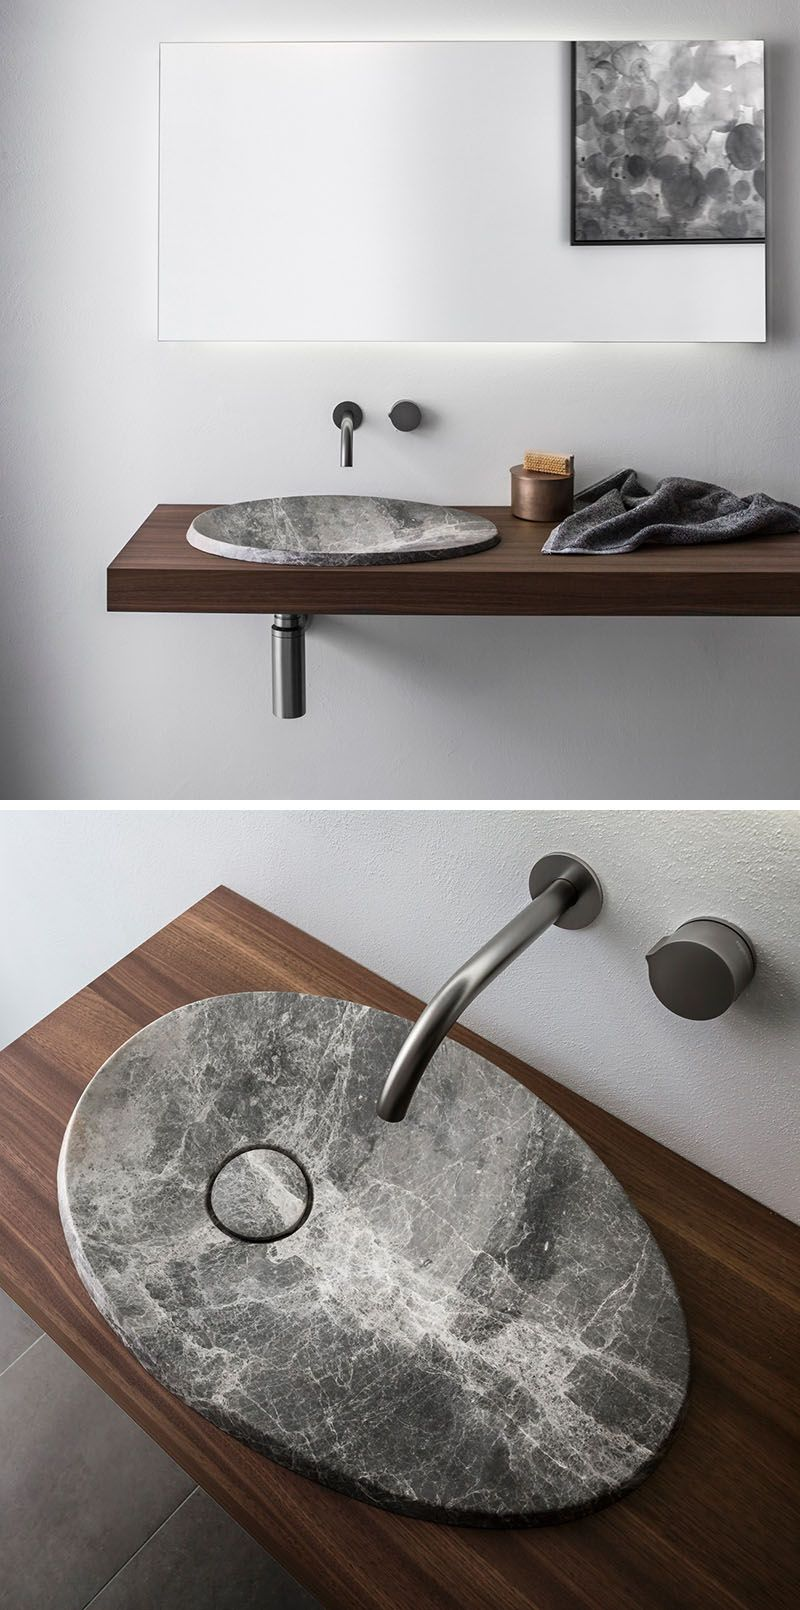 This modern bathroom sink made from natural stone sits on a ... on natural lighting bathroom, natural wood bathroom, natural bathroom products, natural stone bathroom, natural bathroom design ideas, natural tile bathroom,